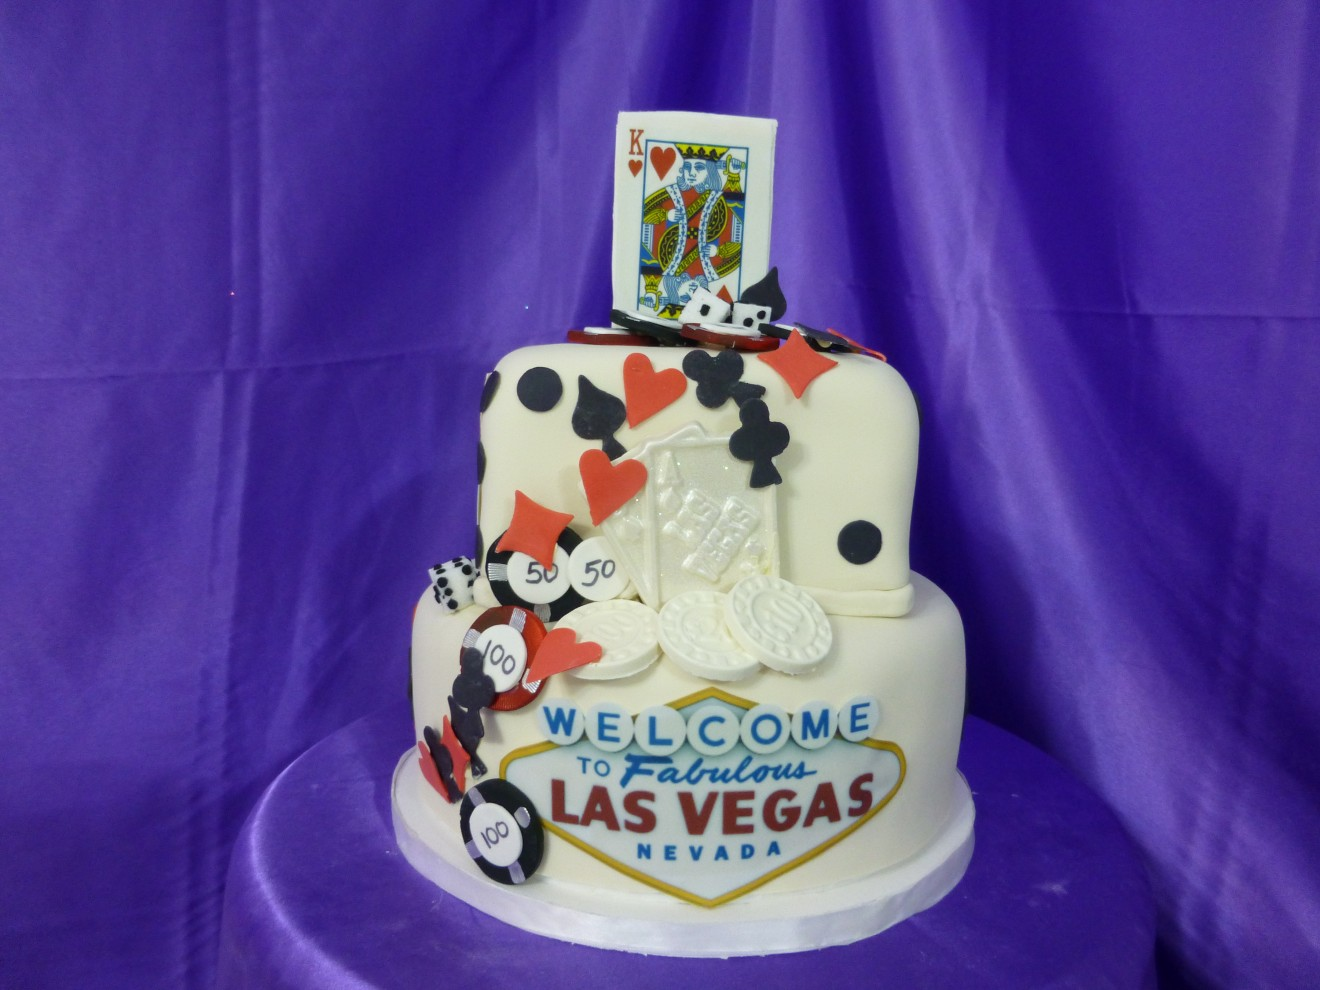 Las Vegas Cakes Cakes On The Move